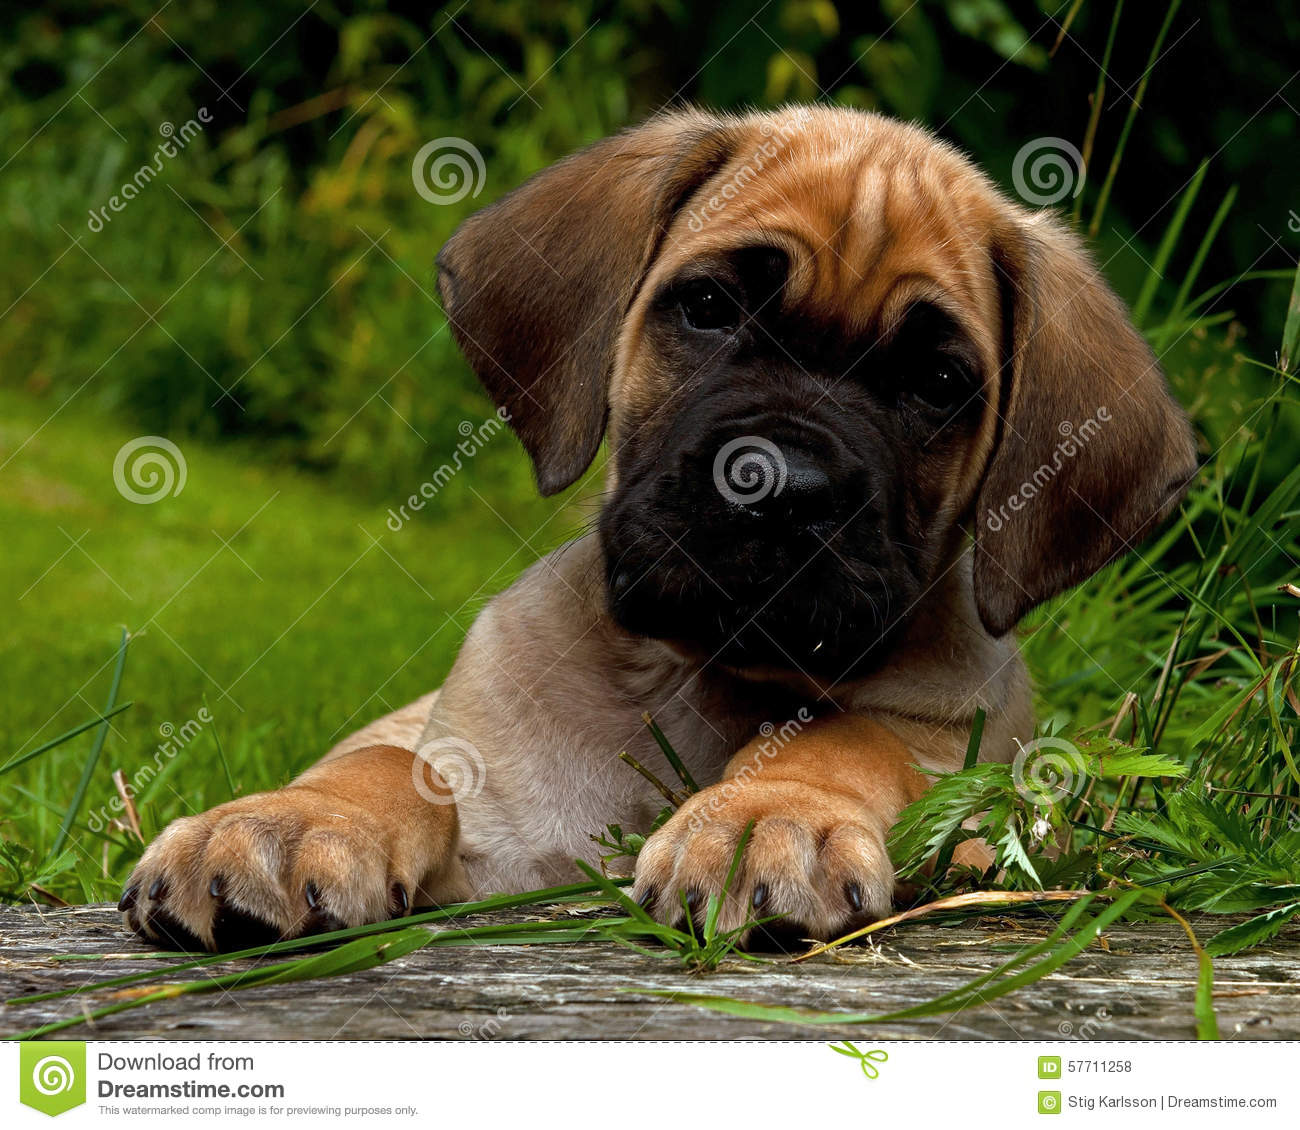 Fawn Cane Corso Puppy, 8 Weeks Stock Photo - Image: 57711258